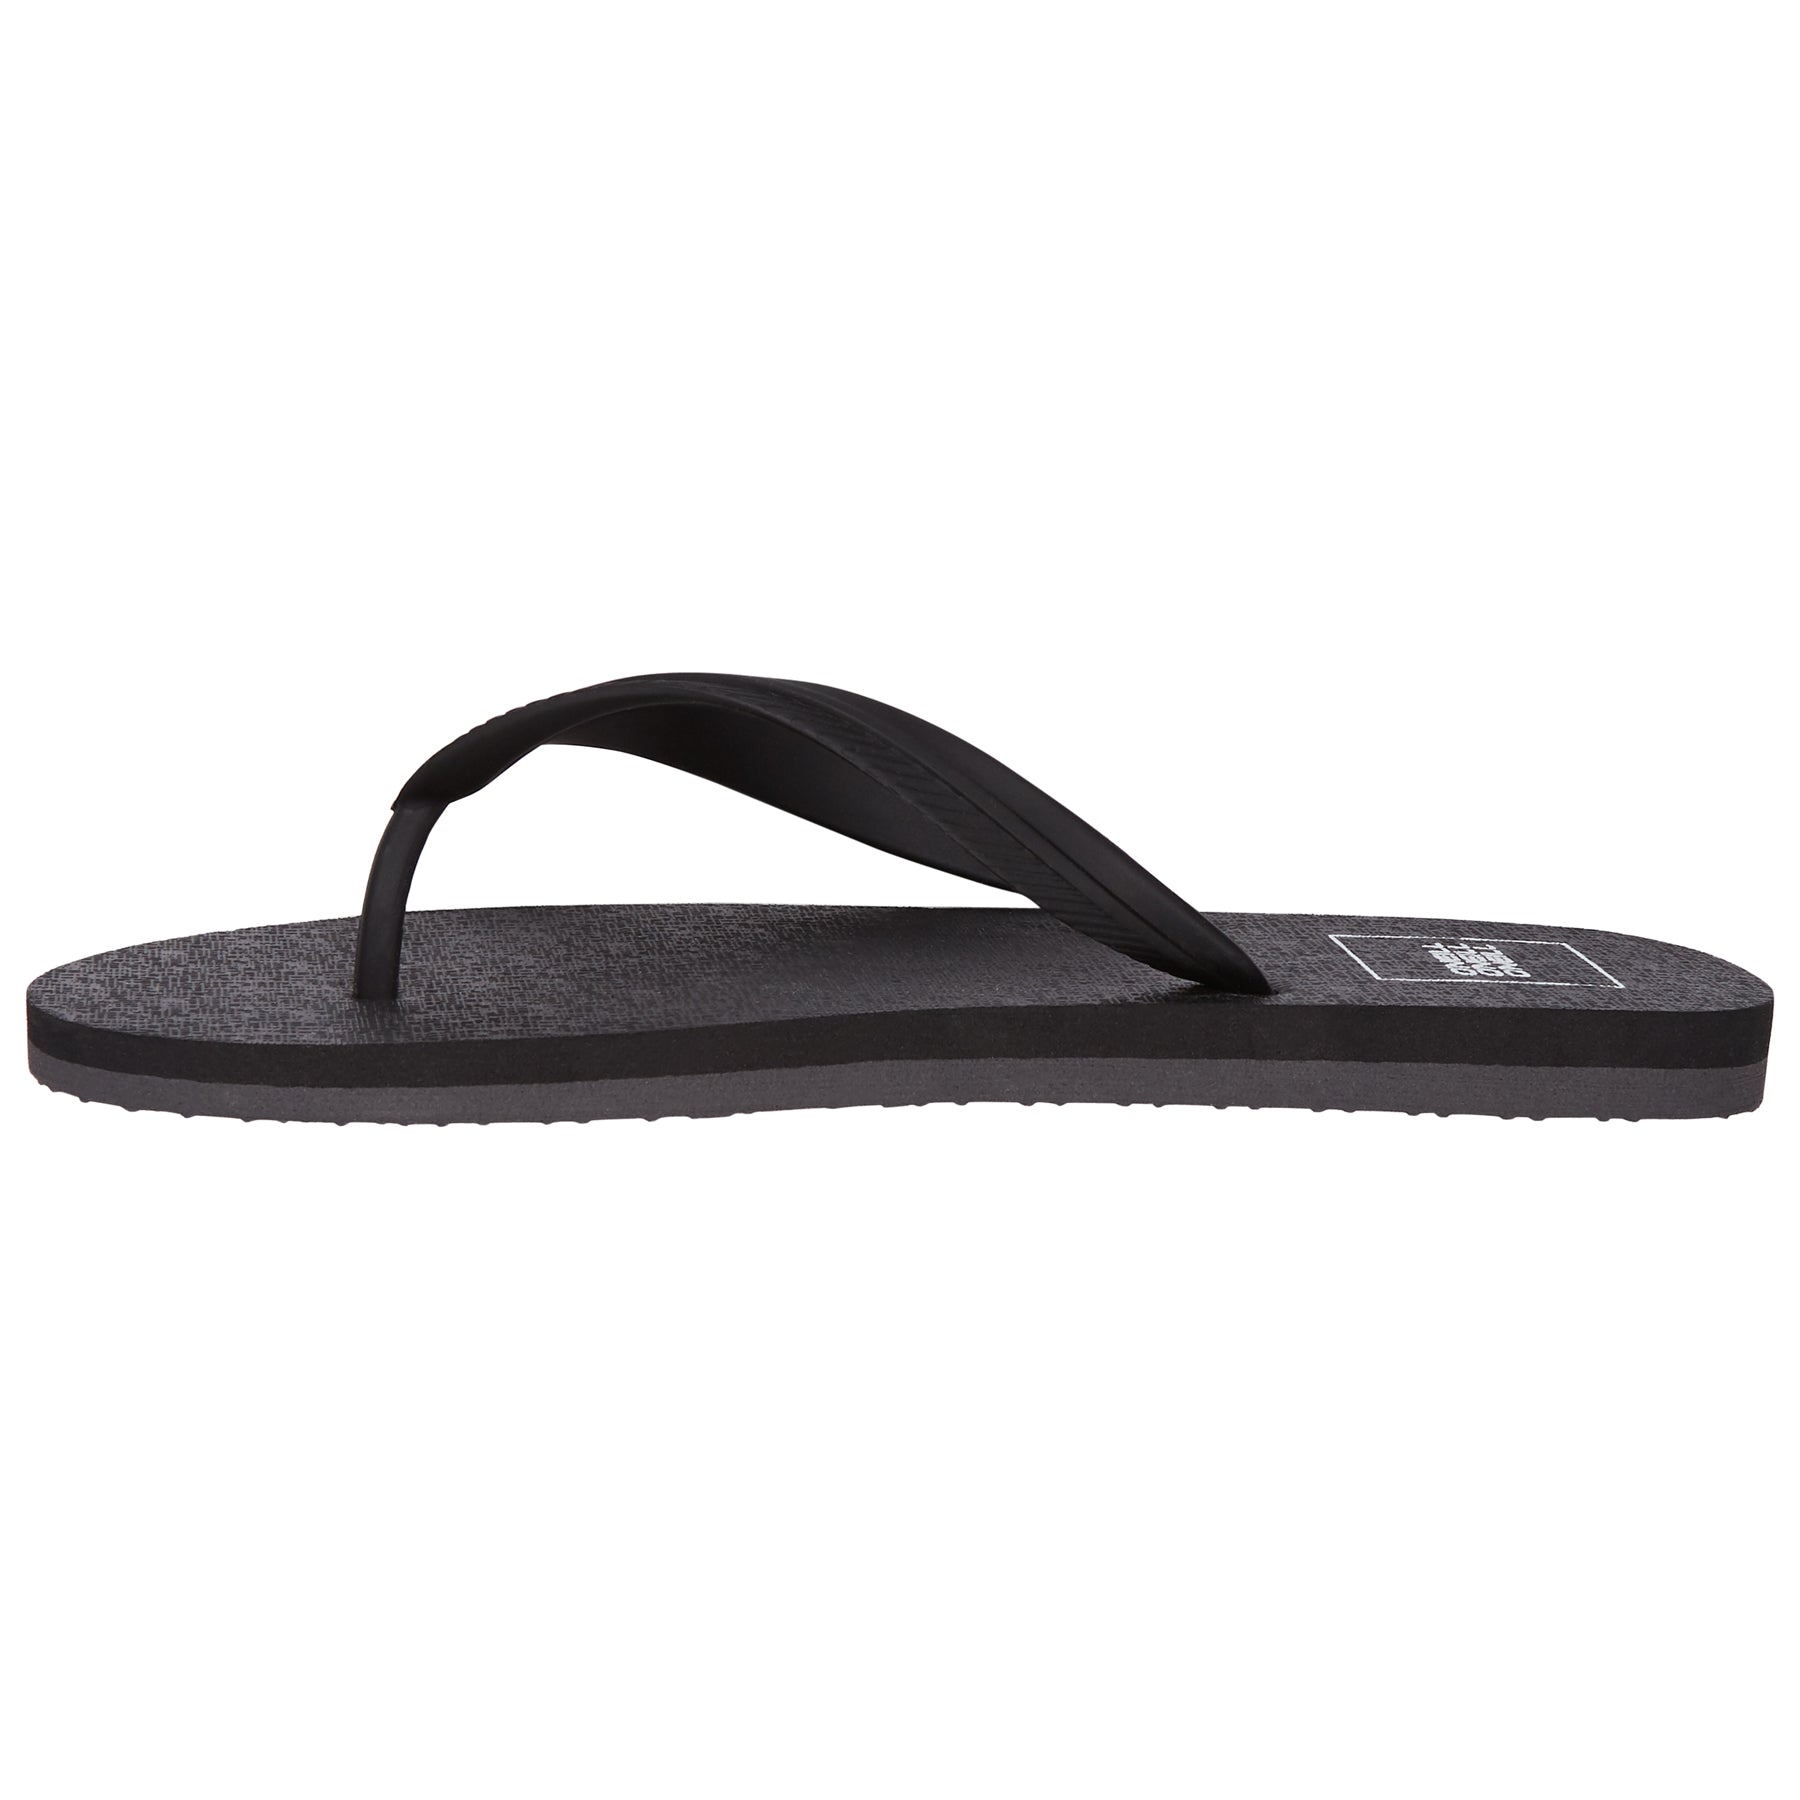 f72c3c824 O NEILL FRICTION SANDALS. MENS FLIP FLOPS. BLACK OUT – Peak Nation